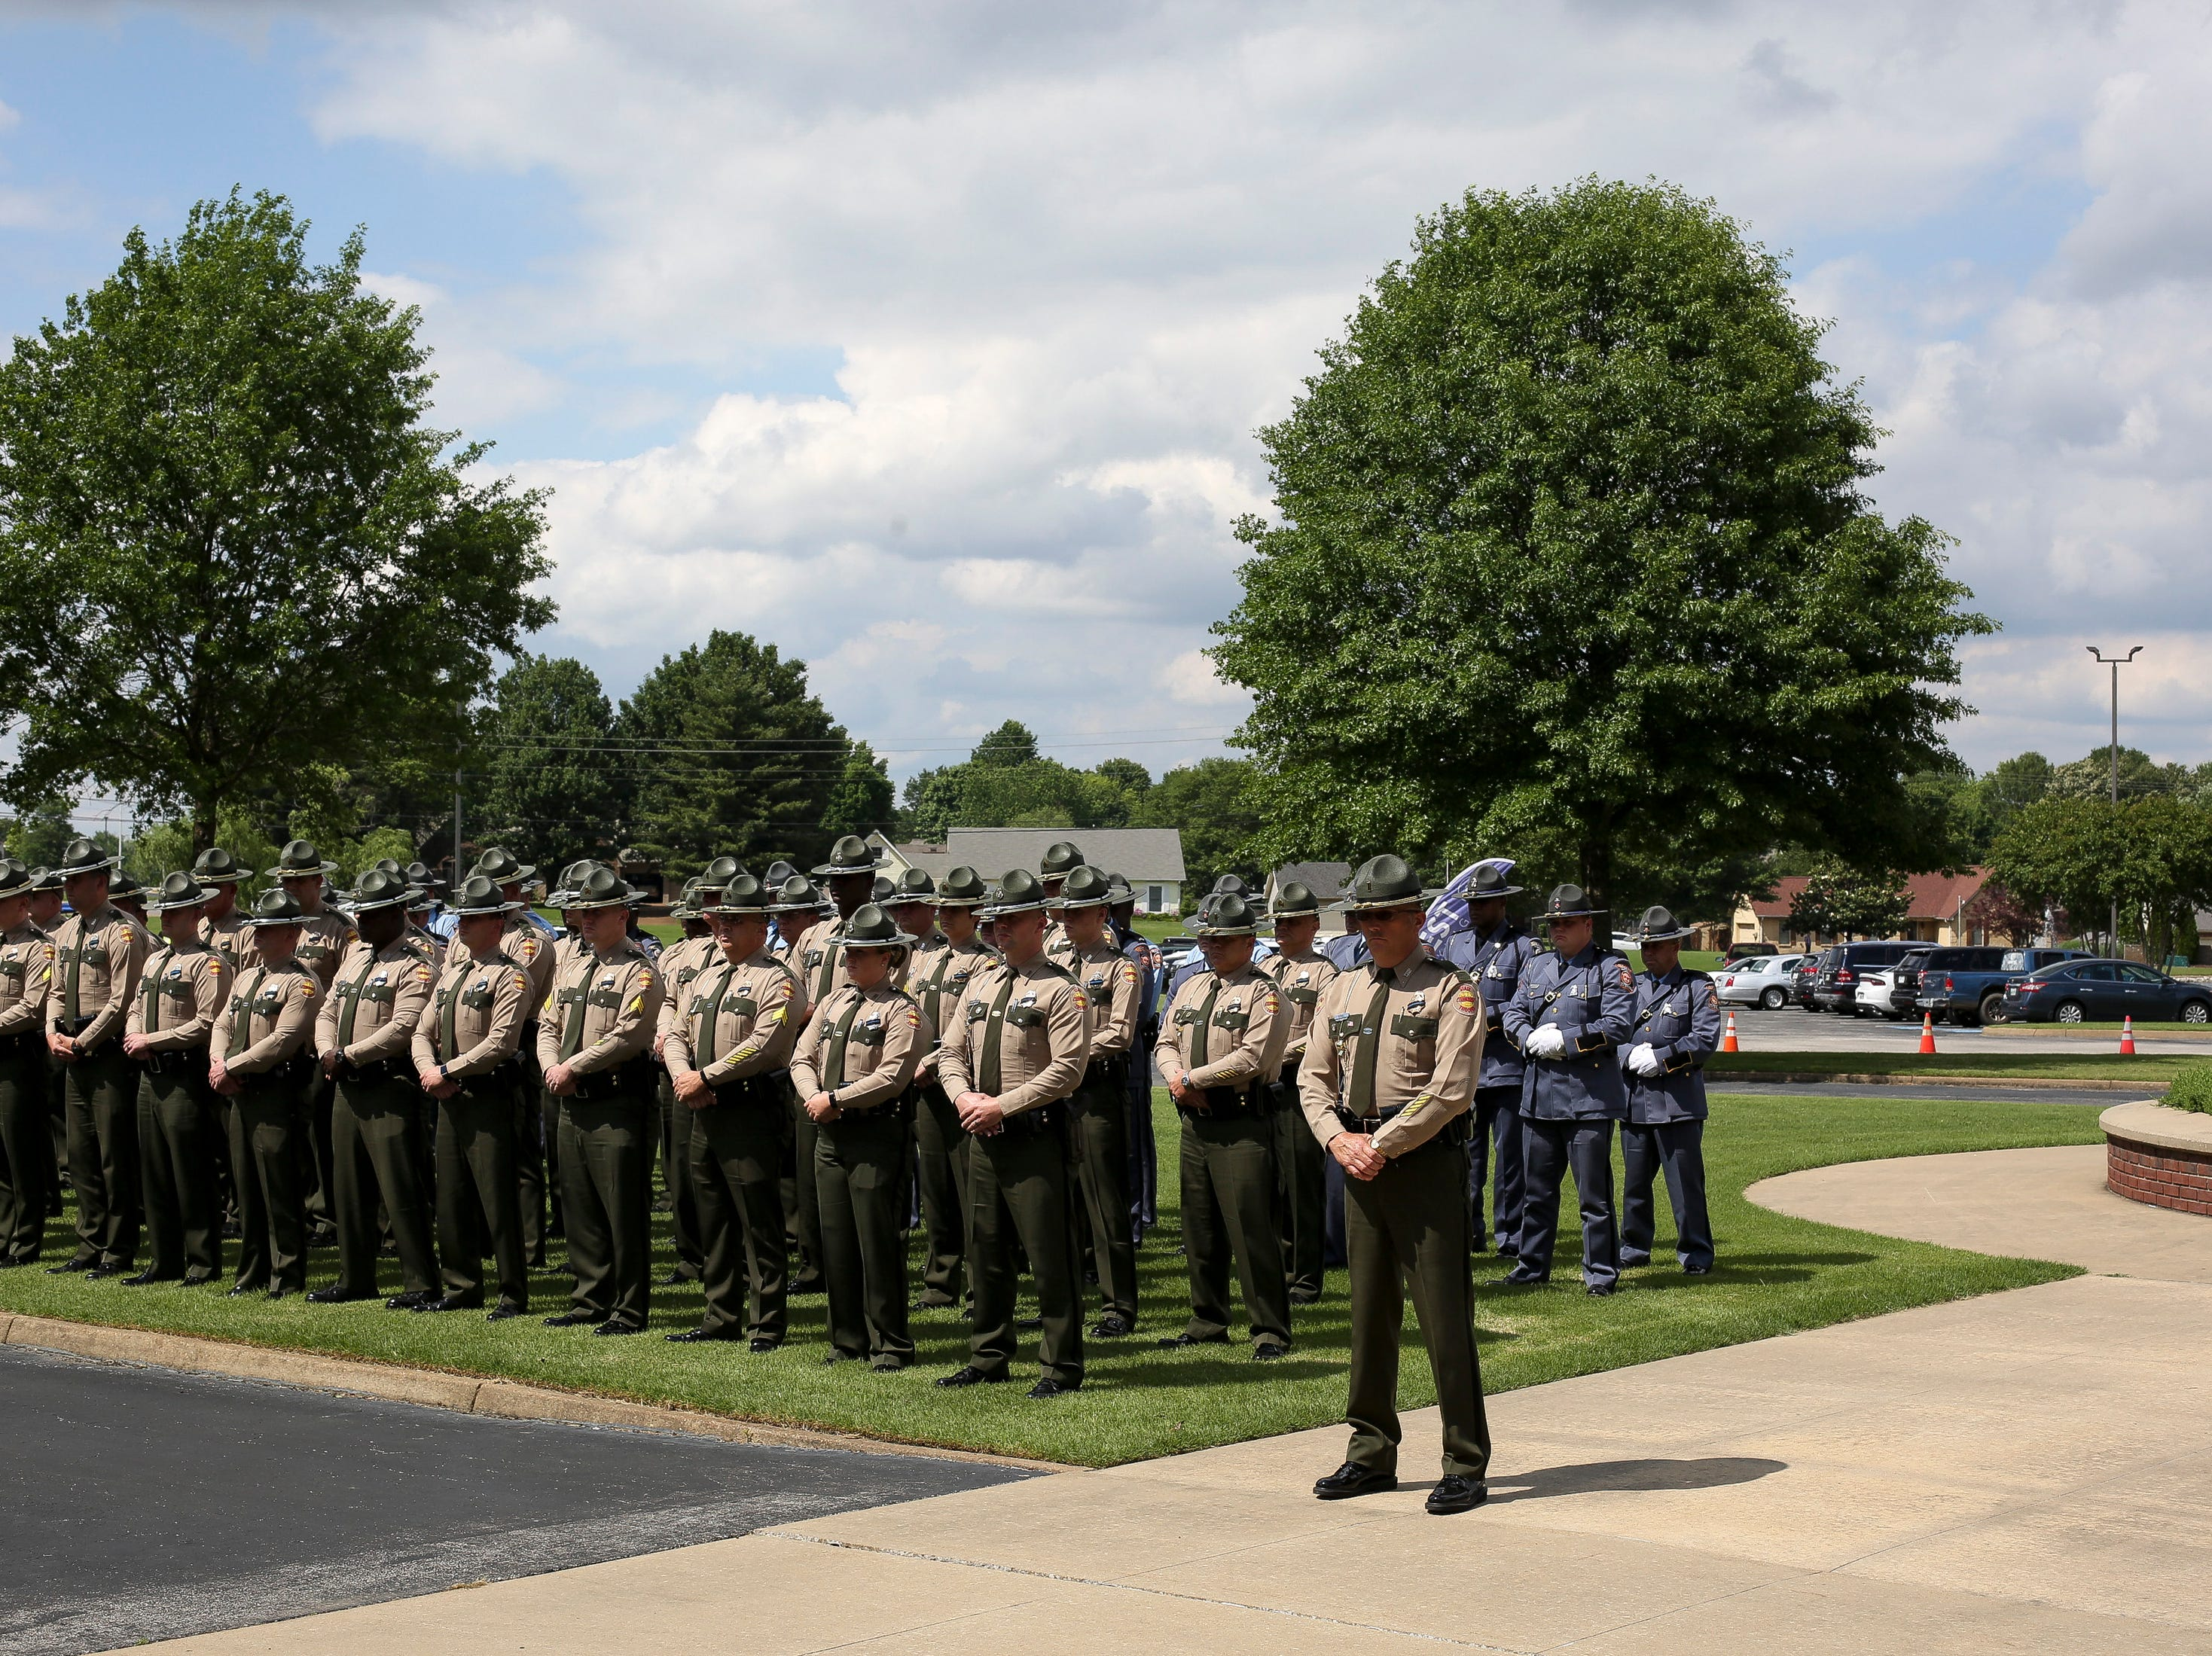 Tennessee State Troopers line up after the funeral service for Tennessee State Trooper Matthew Gatti at West Jackson Baptist Church in Jackson, Tenn., Monday, May 13, 2019. Gatti died in the line of duty in an accident while responding to a car fire on I-40 in Madison County on May 6.